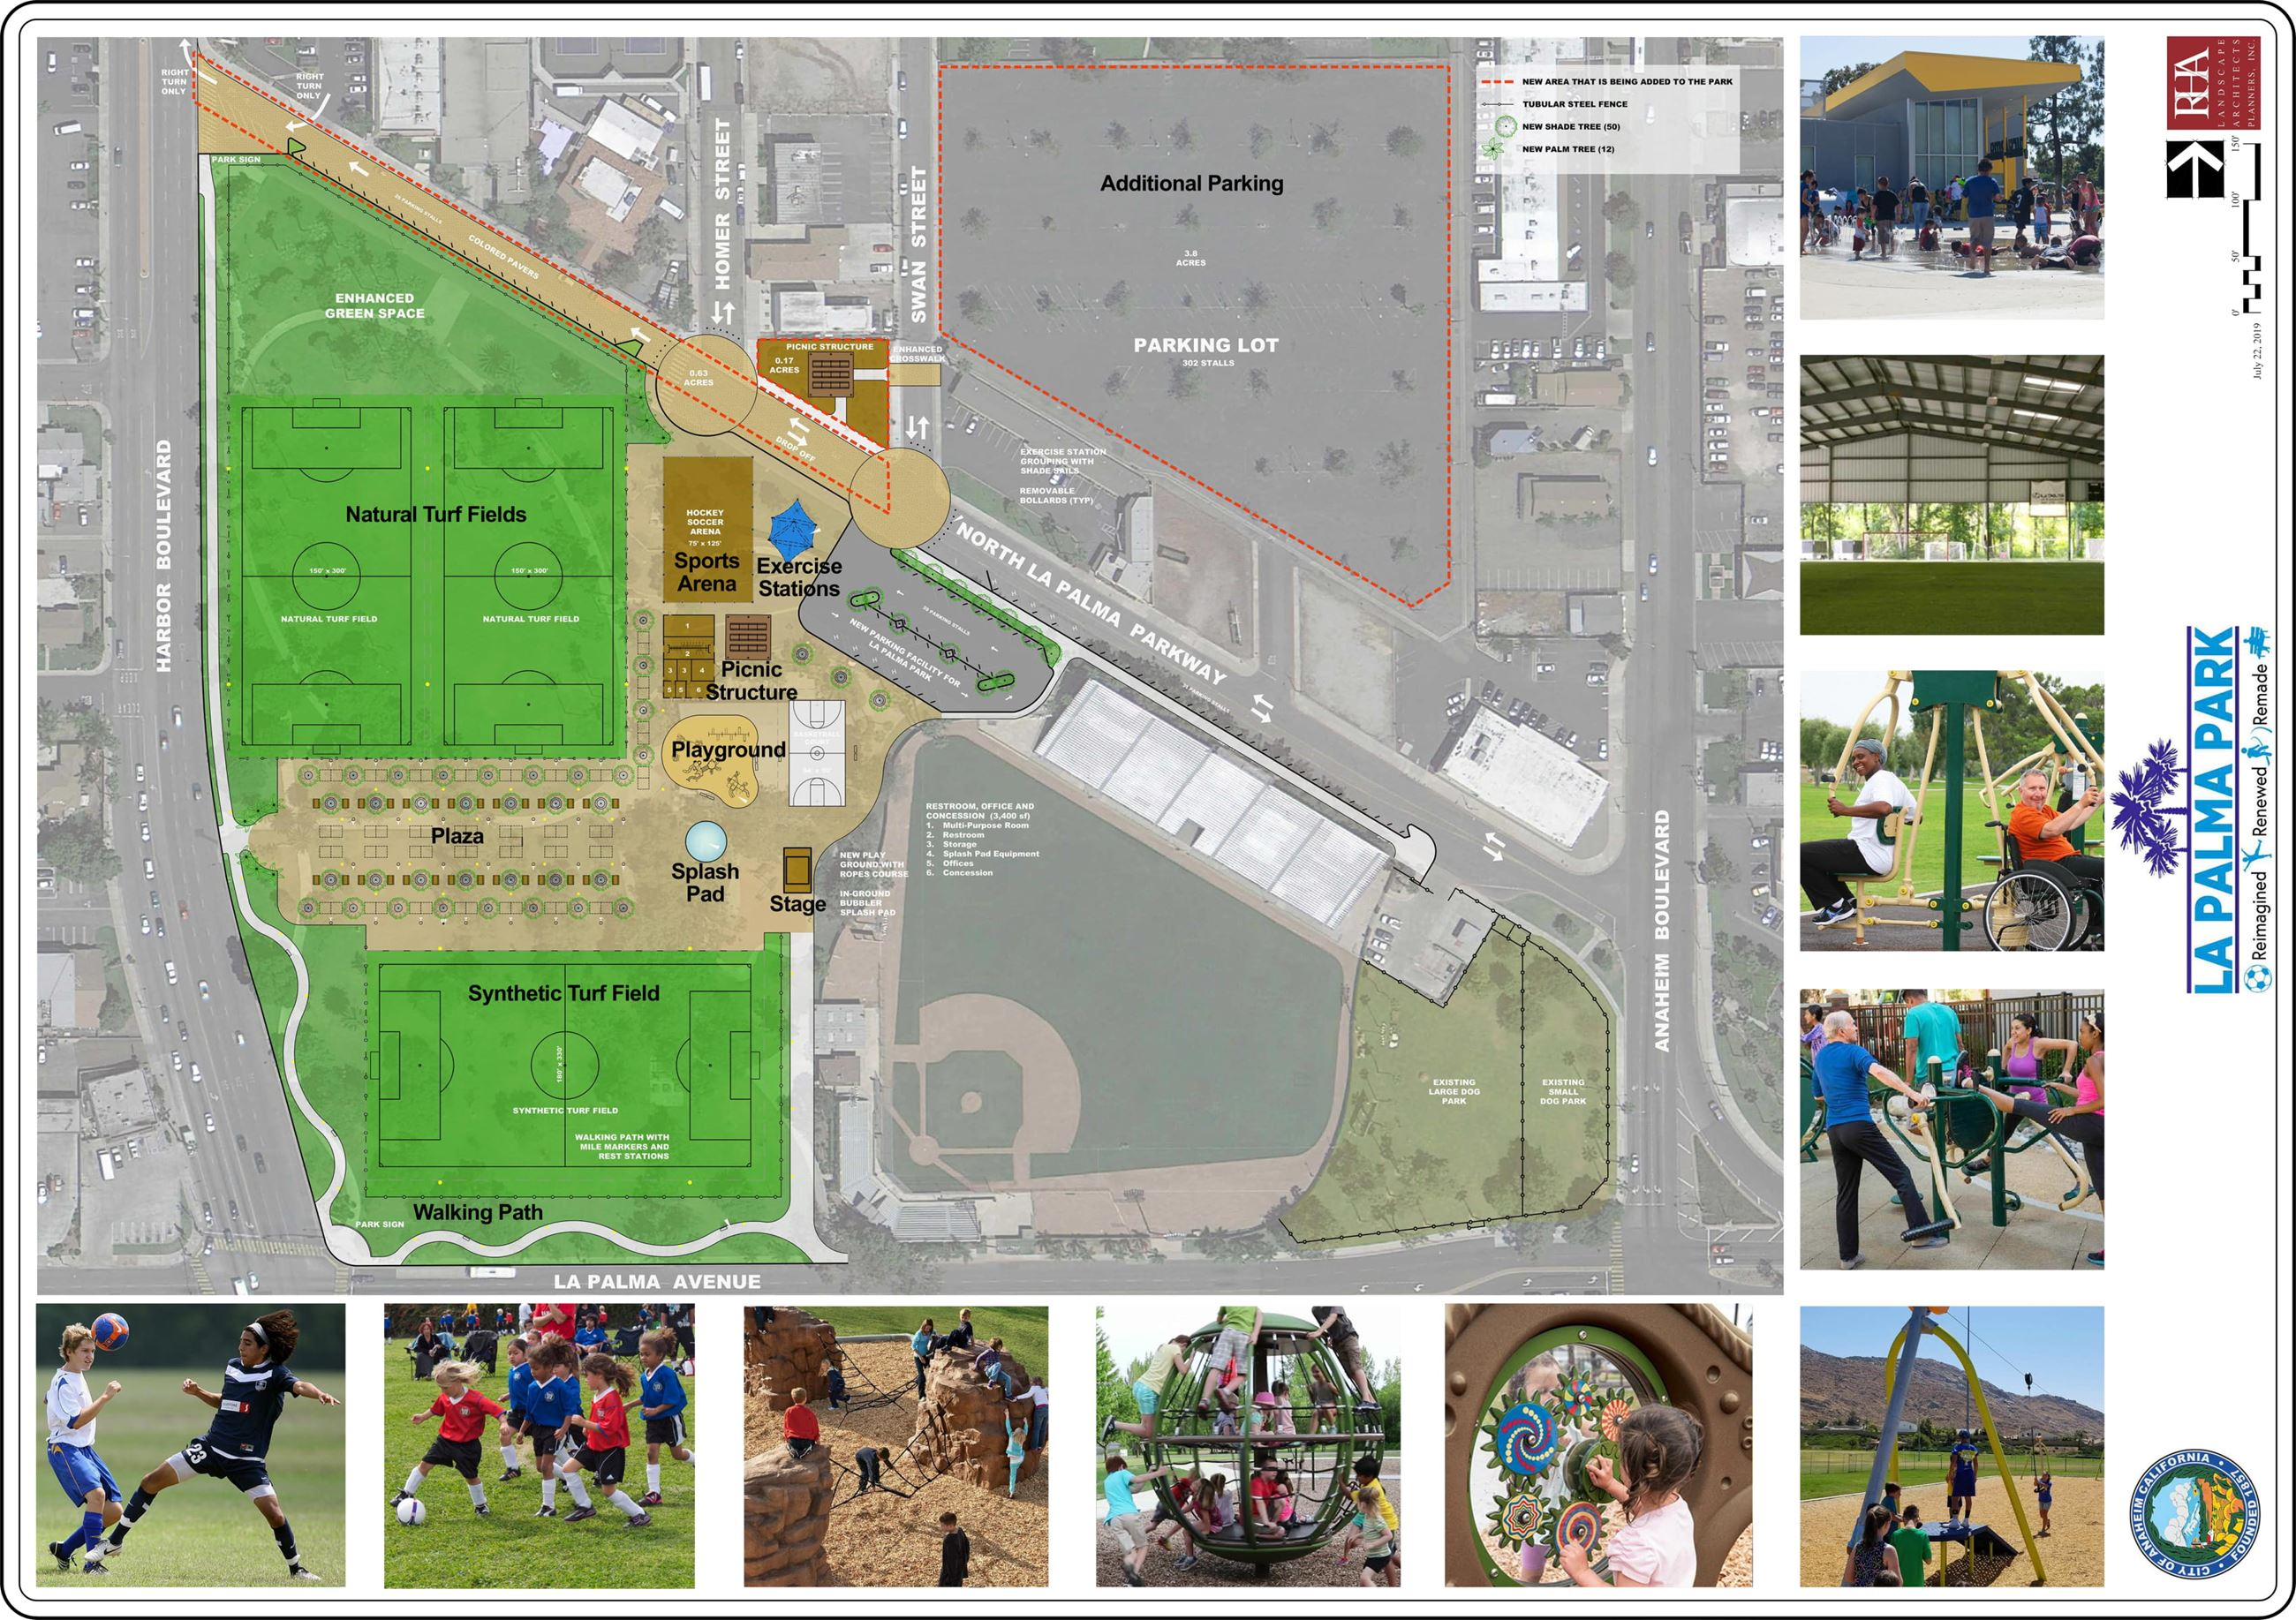 Anaheim - La Palma Park Concept Plan (7-22-19) v3-1 Opens in new window